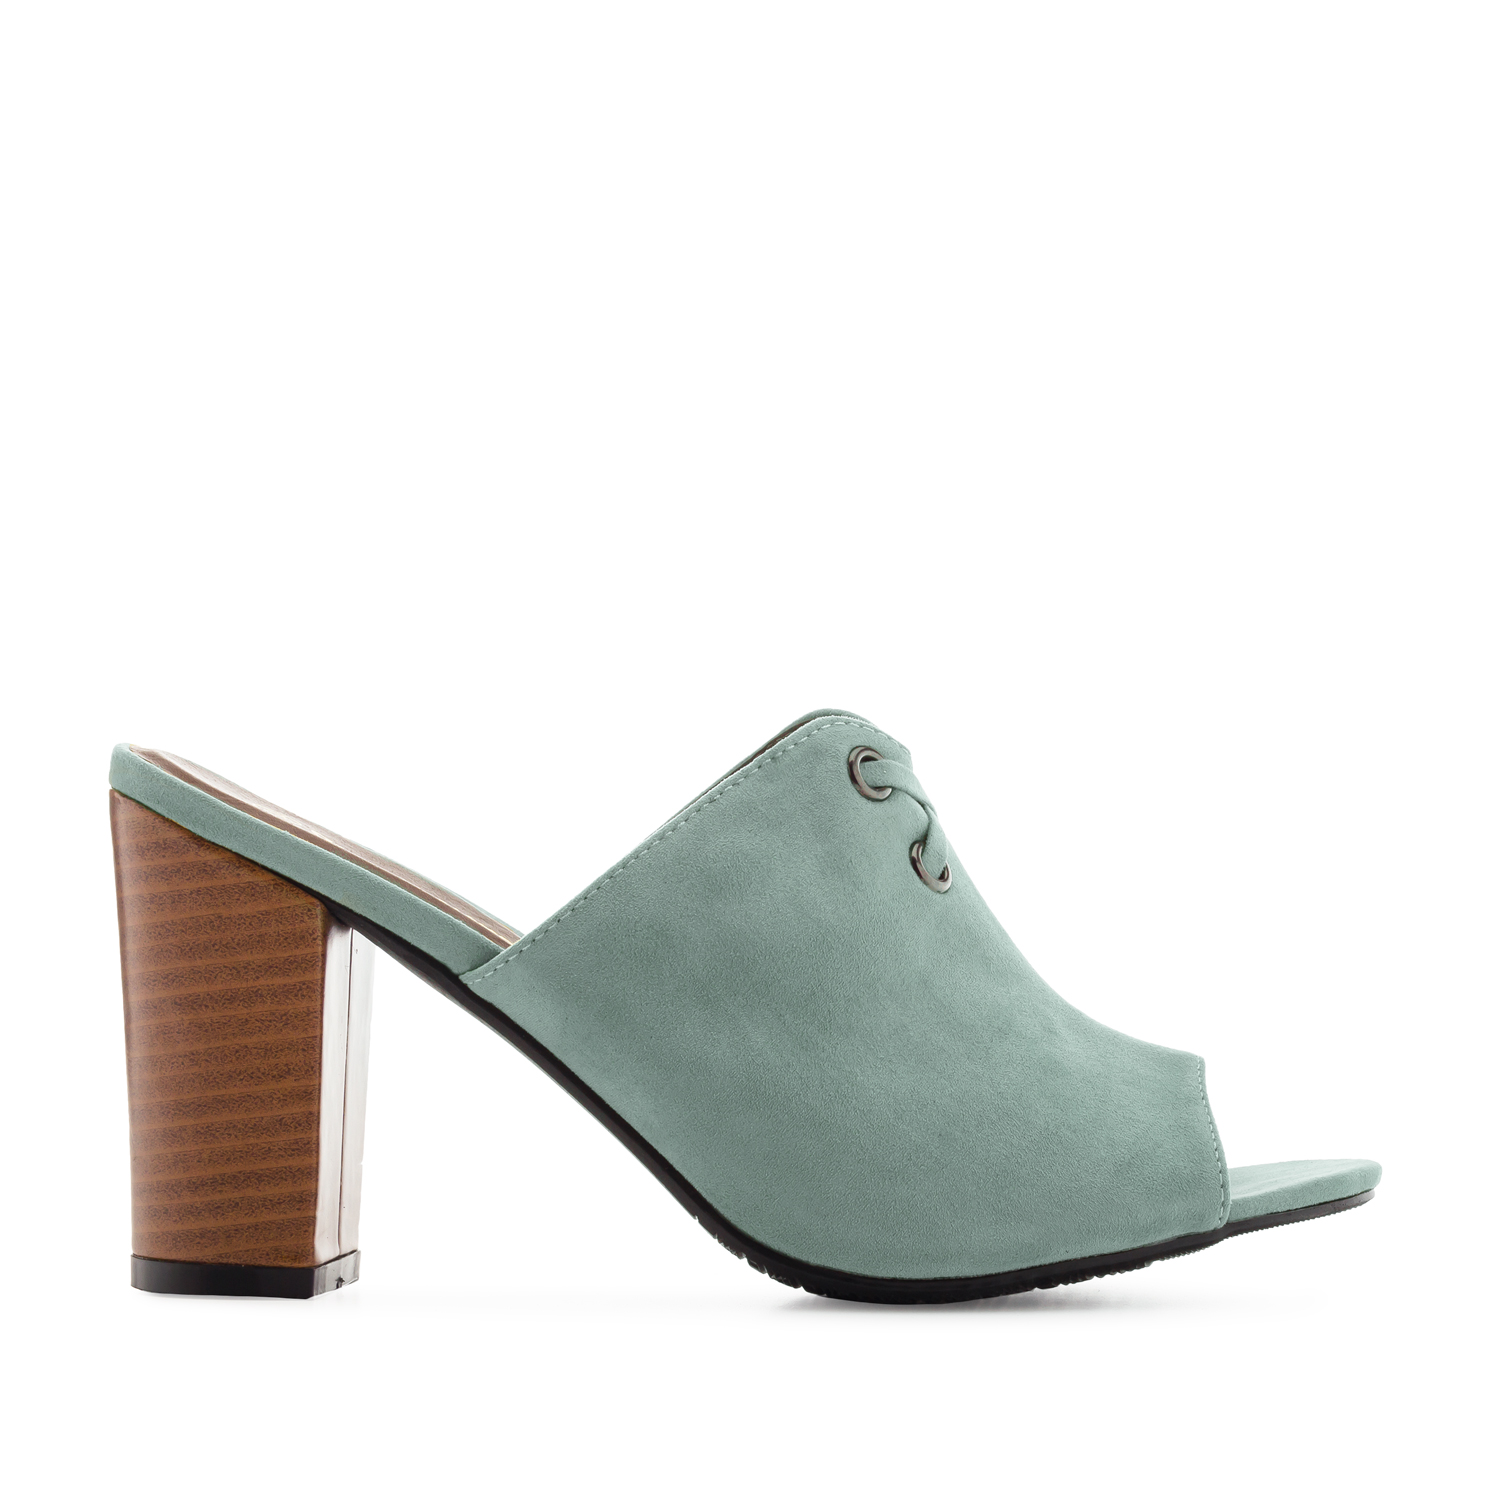 Mules in Turquoise Suede